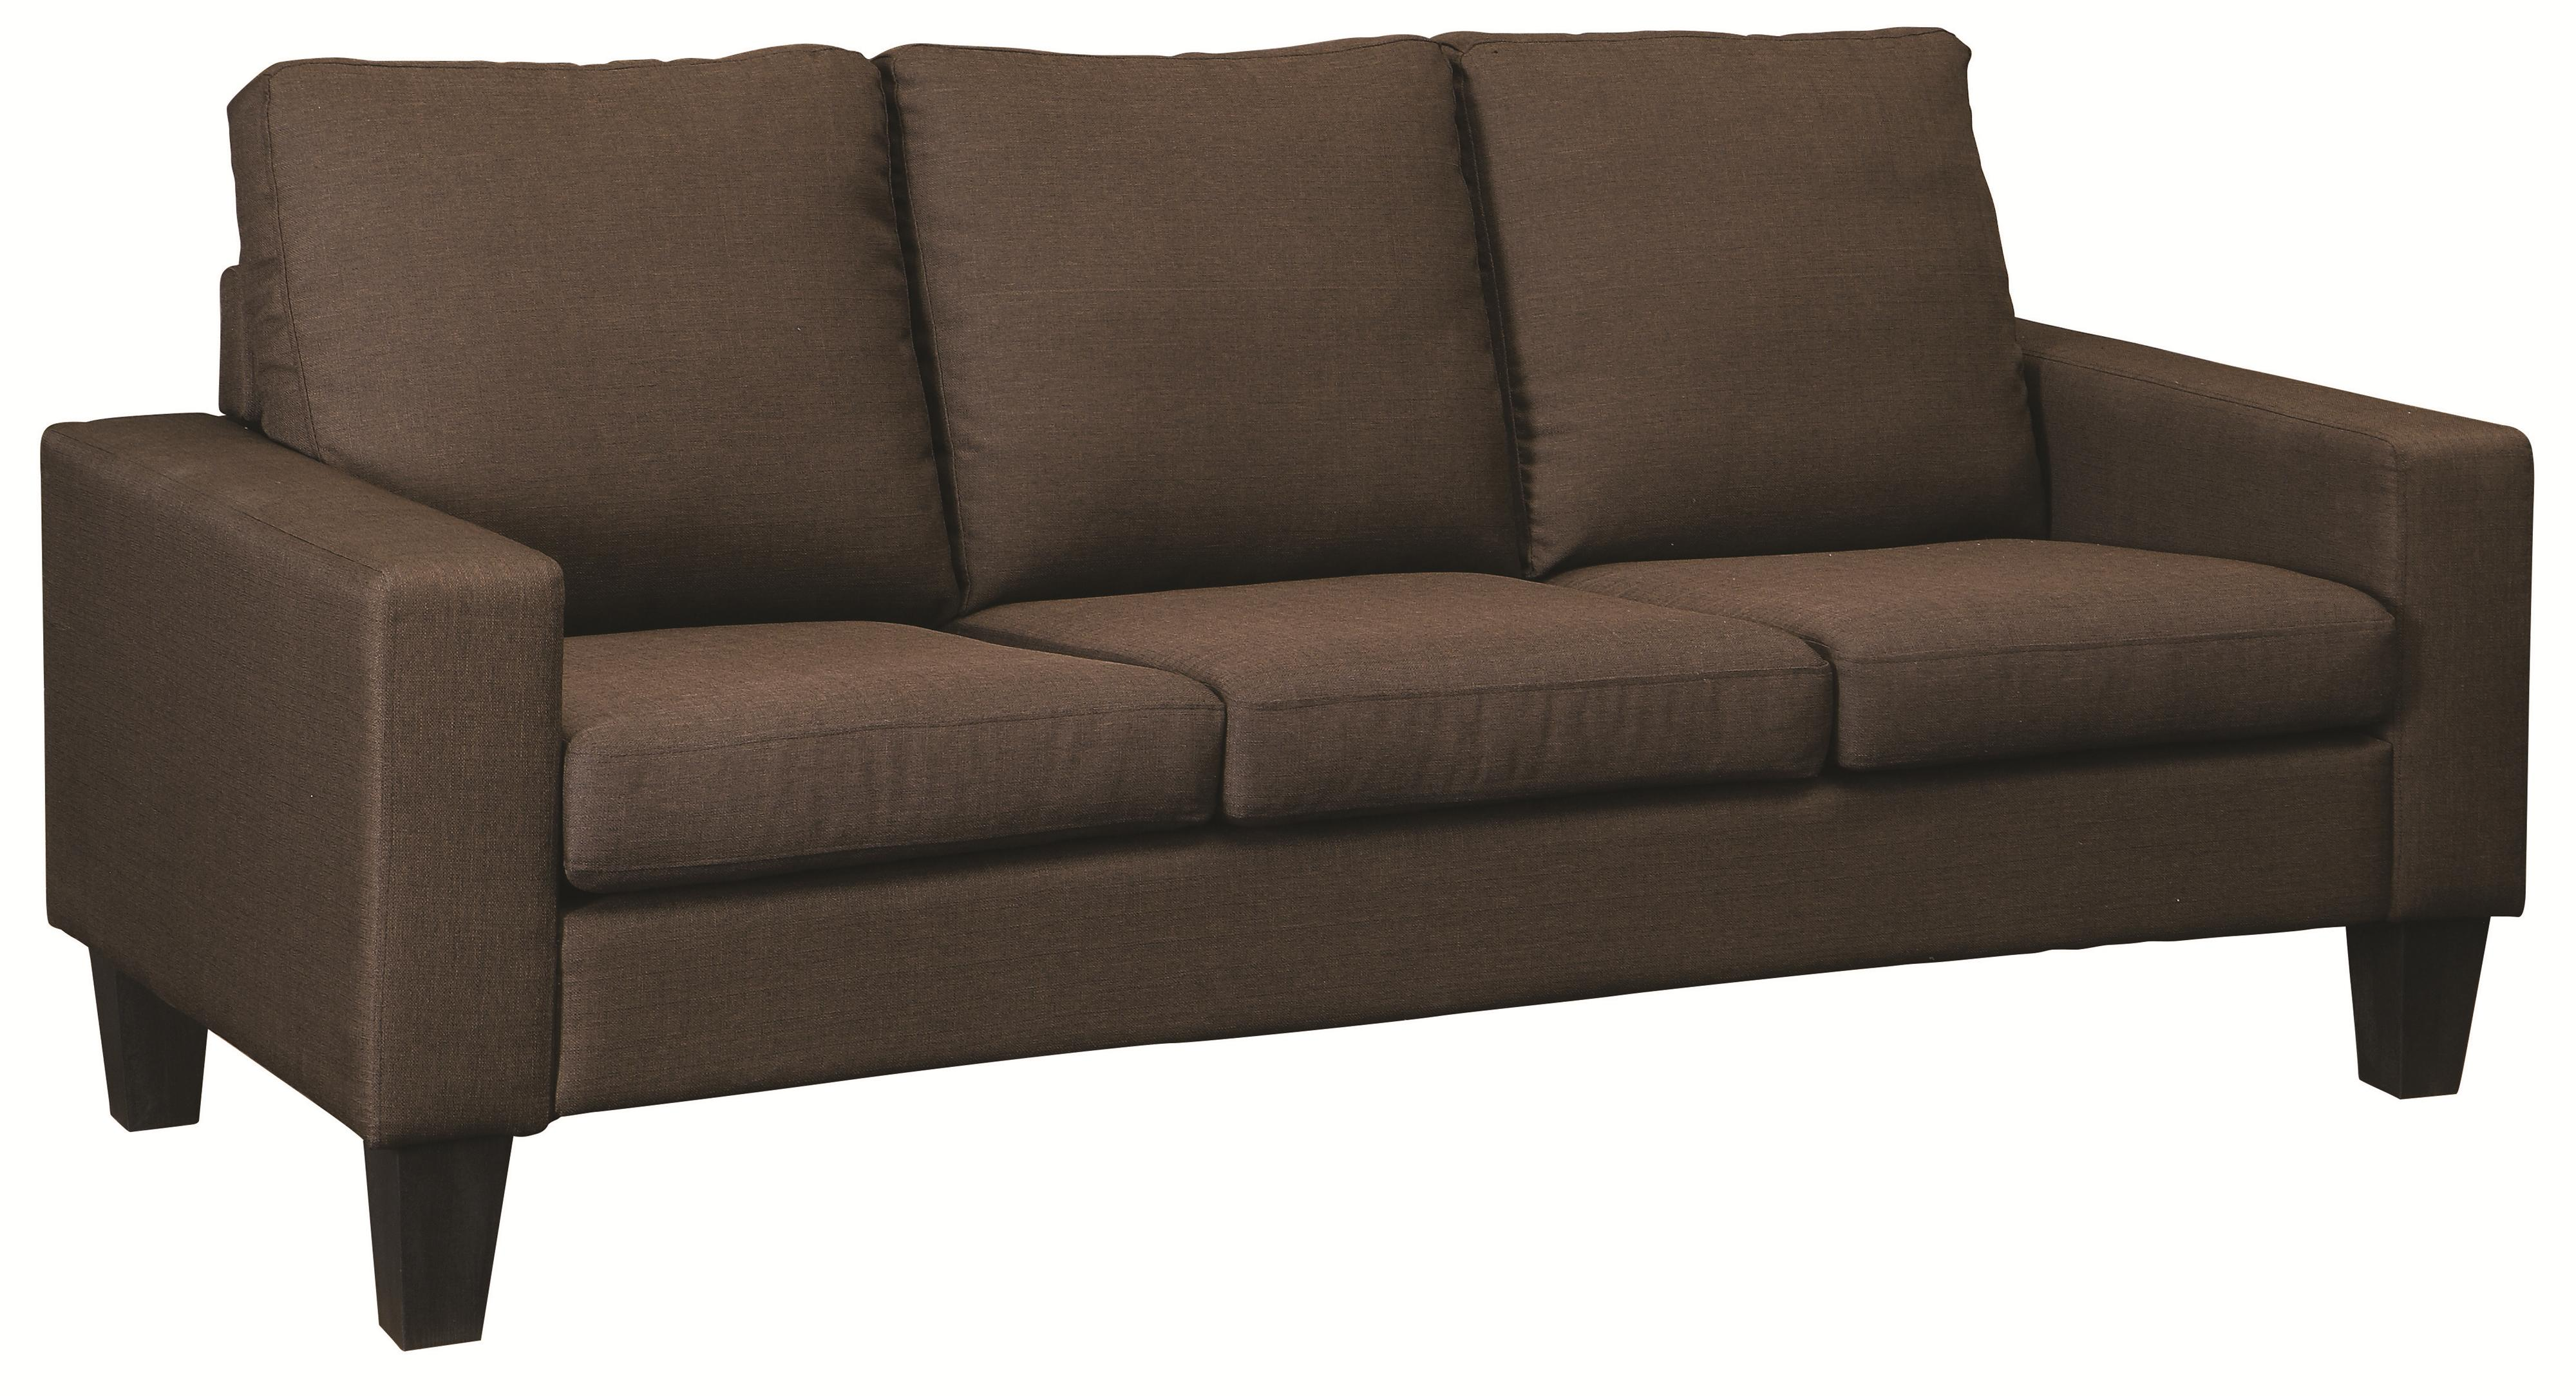 Coaster Bachman Stationary Sofa - Item Number: 504767-Chocolate Linen